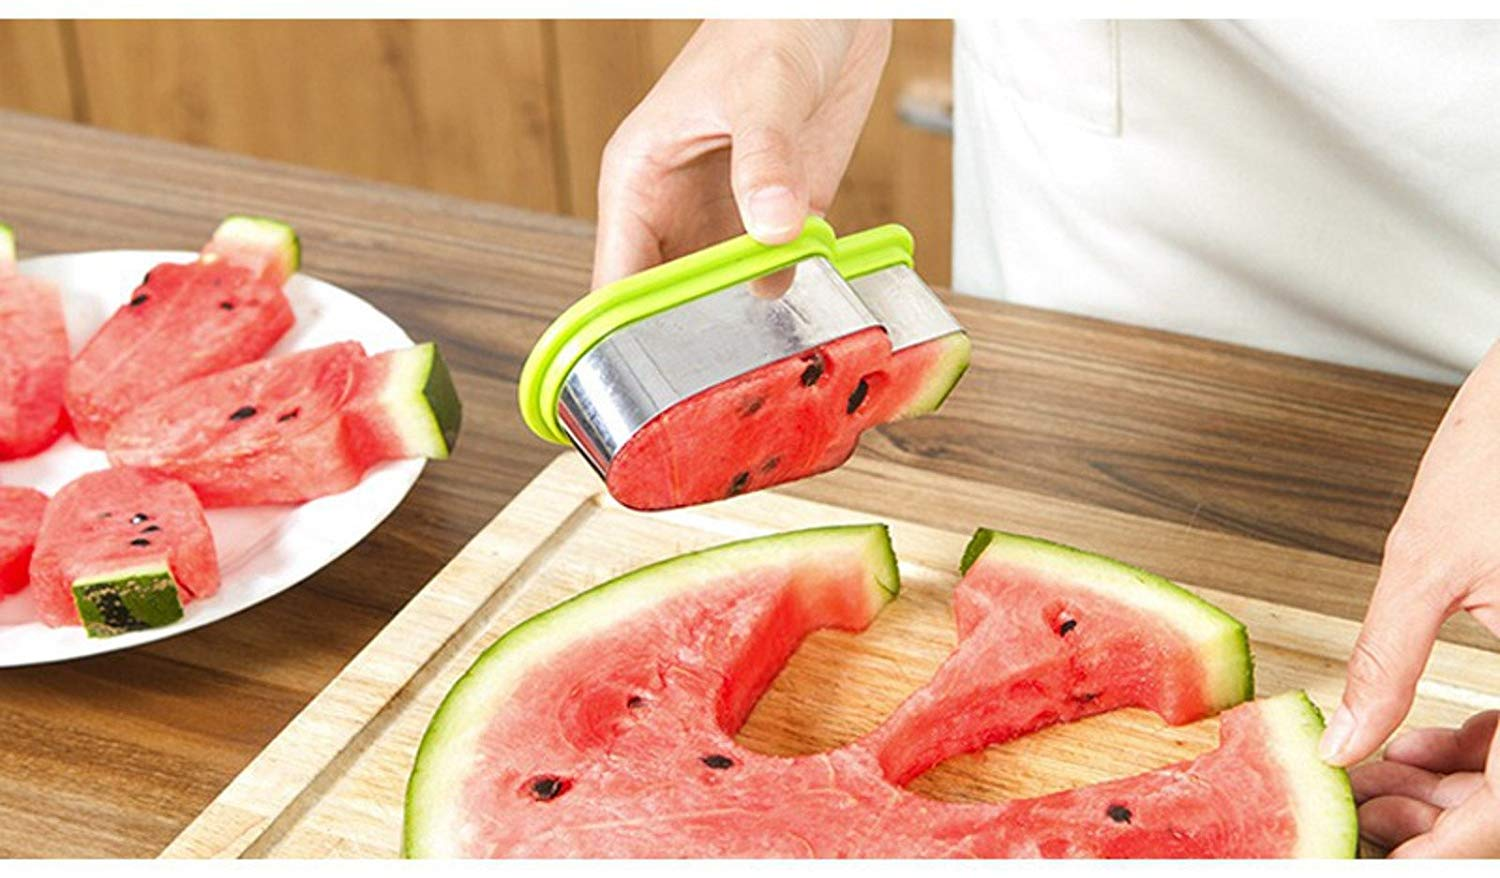 TSG GLOBAL 1PC Creative Watermelon Slicer Ice Cream Mold Vegetable Cutting Tool Kitchen Accessories Stainless Steel Popsicle Simple Form